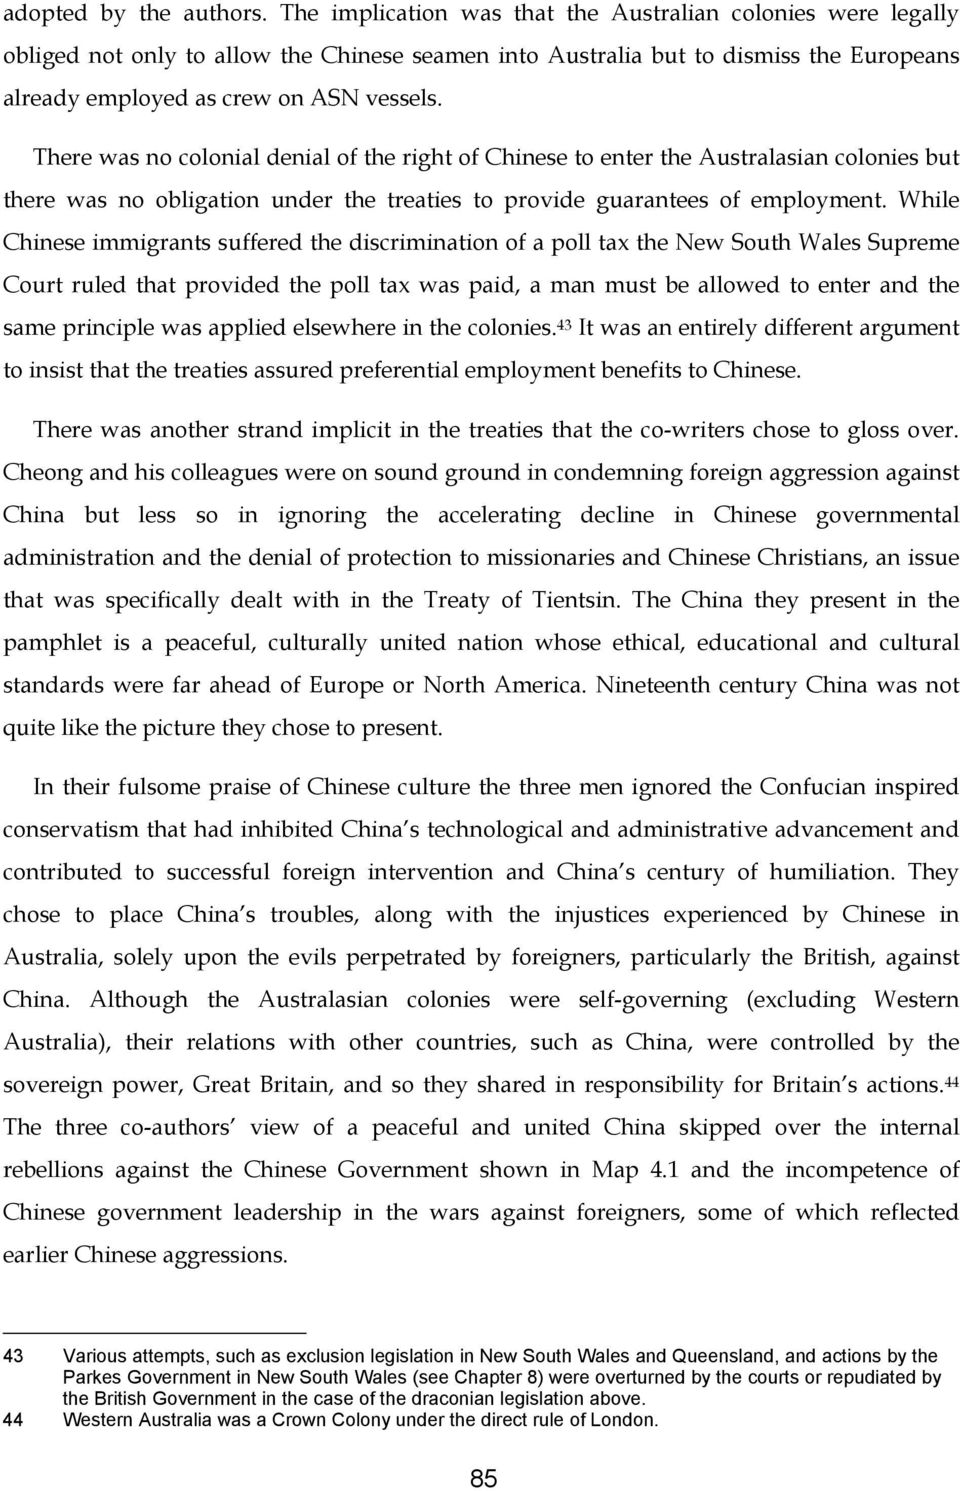 There was no colonial denial of the right of Chinese to enter the Australasian colonies but there was no obligation under the treaties to provide guarantees of employment.